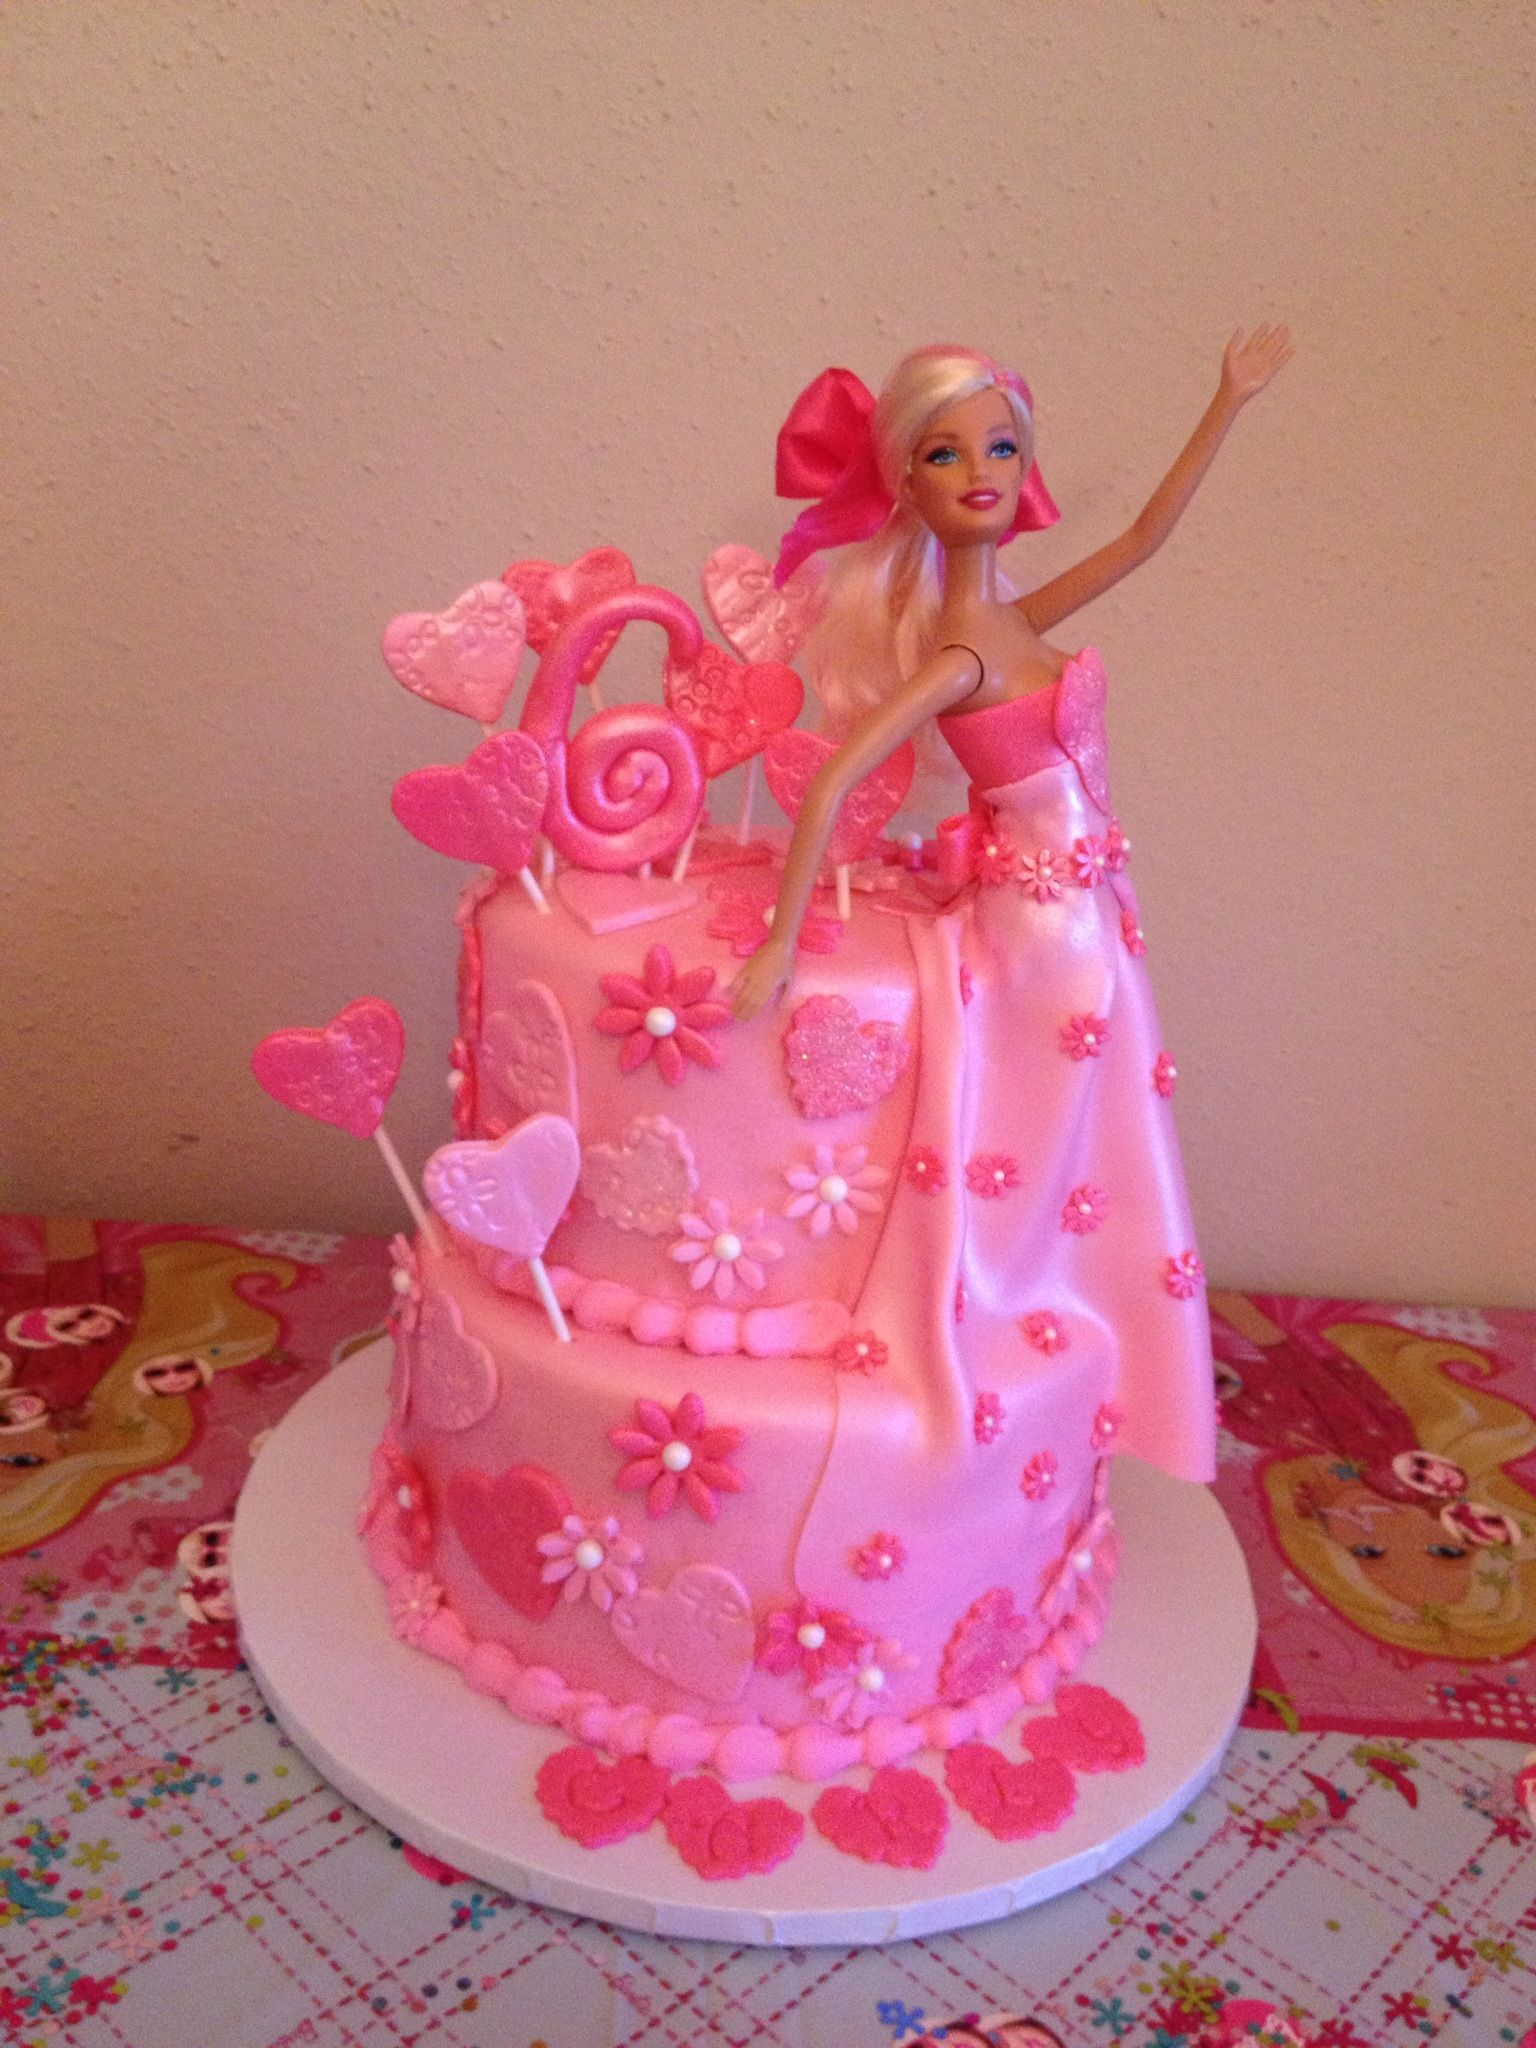 Sensational Pink Barbie Cake With Pink Hearts And Flowers With Funny Birthday Cards Online Benoljebrpdamsfinfo